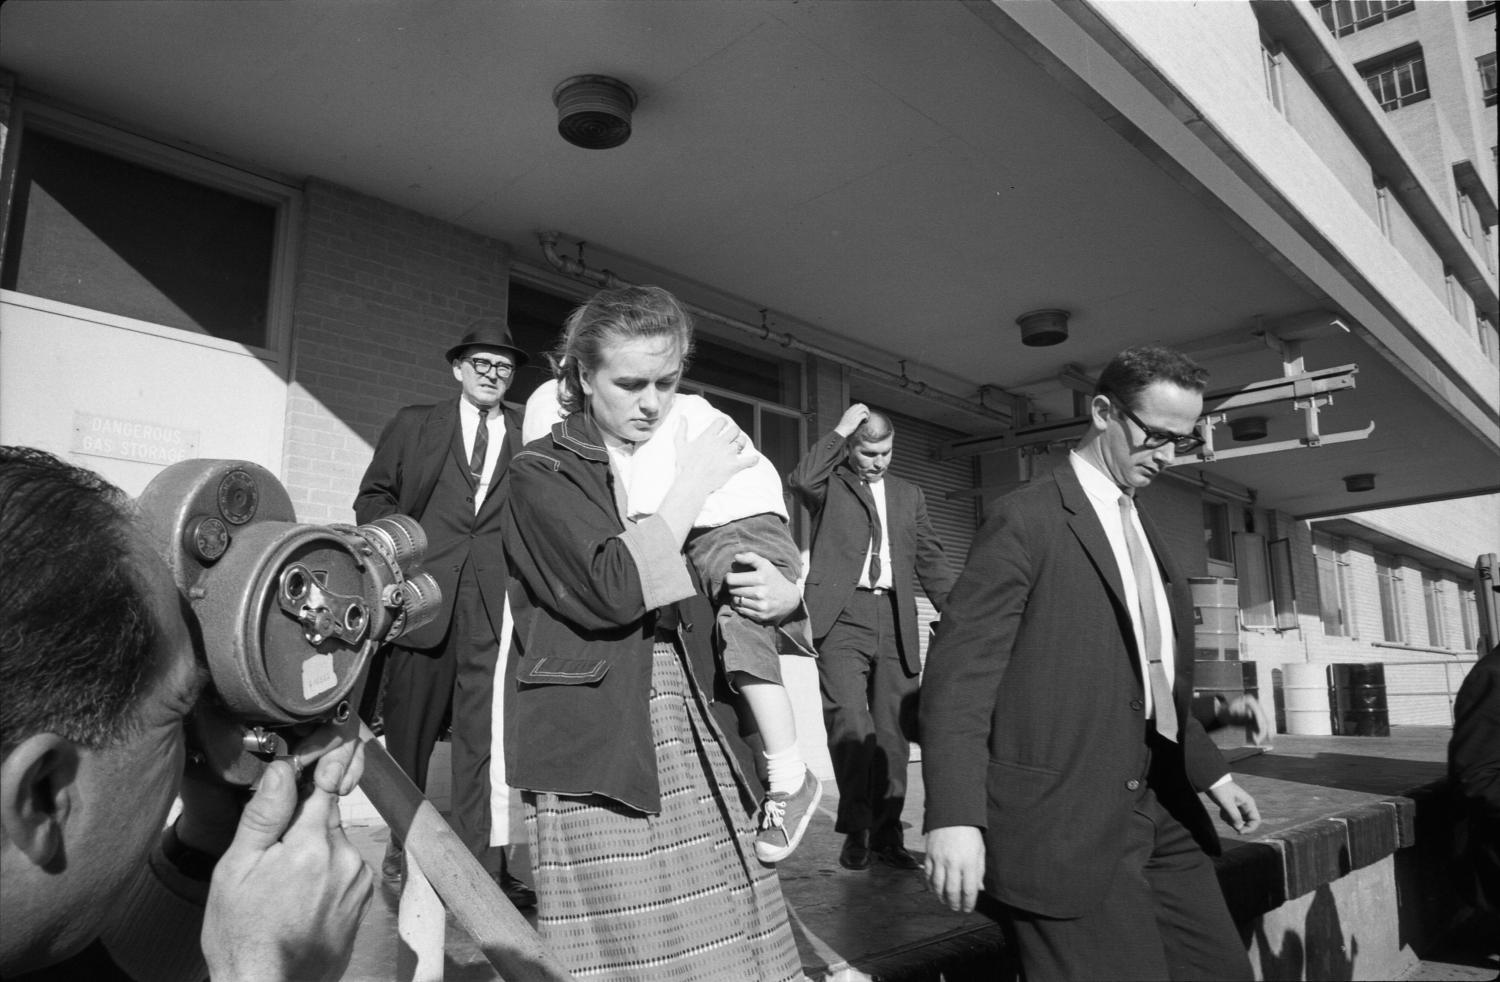 Marina And June Oswald Leaving Parkland Hospital The